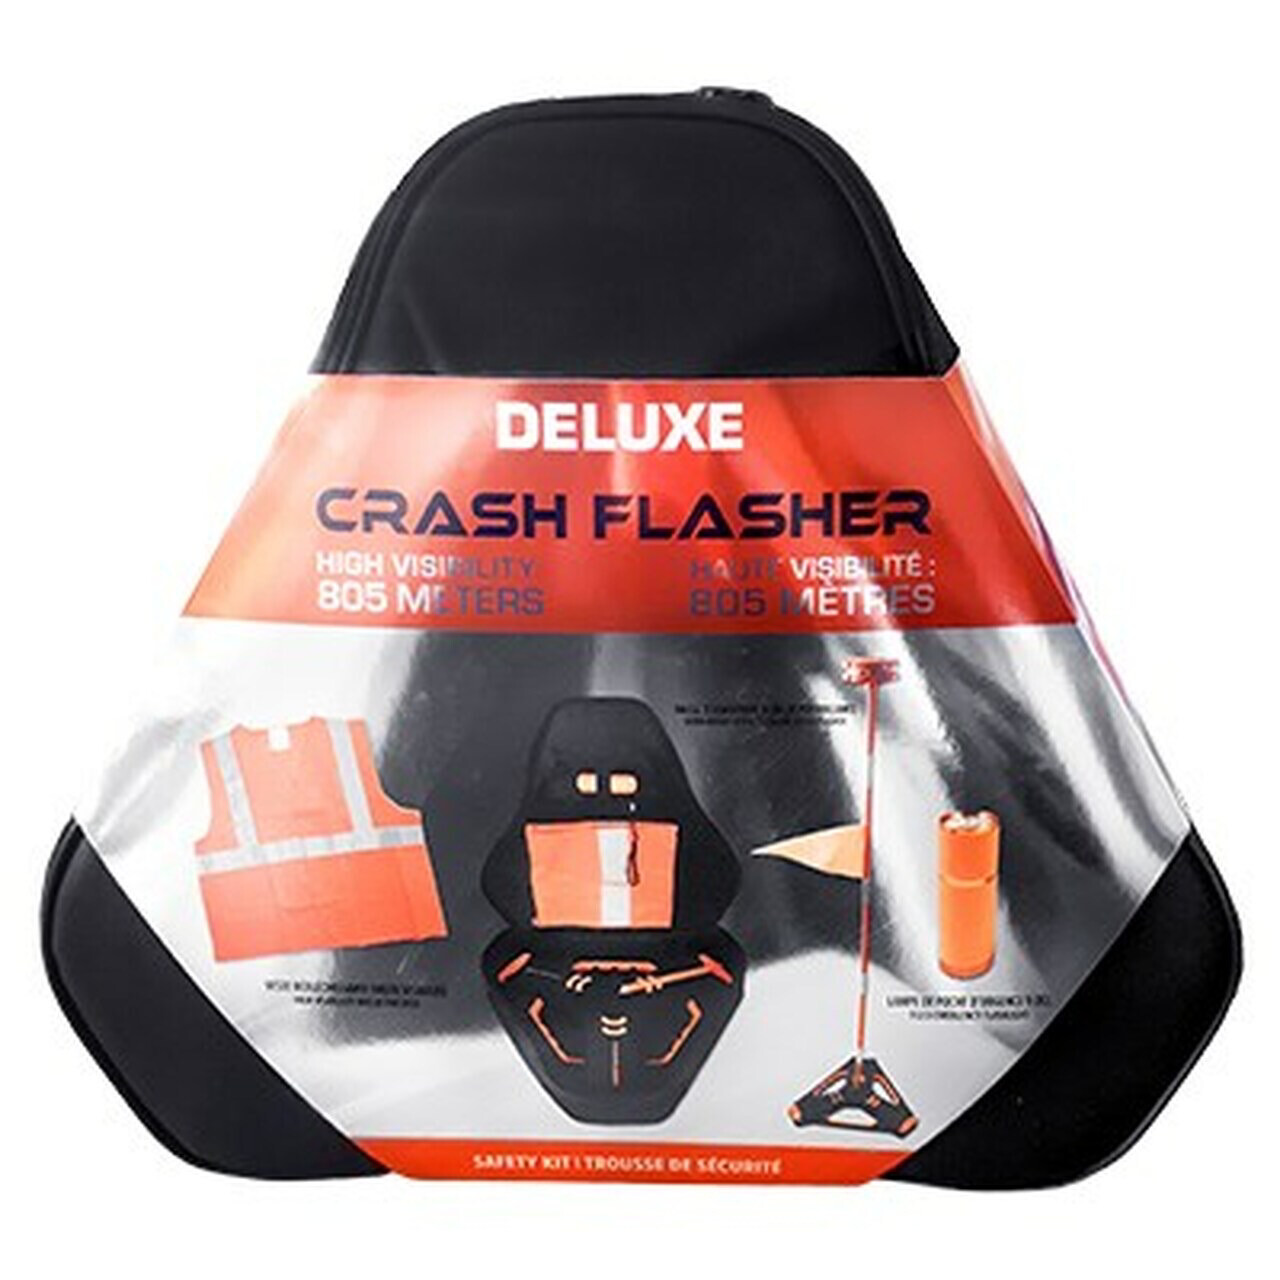 Crash Flasher Safety Kit (High Visibility up to 850 Meters)